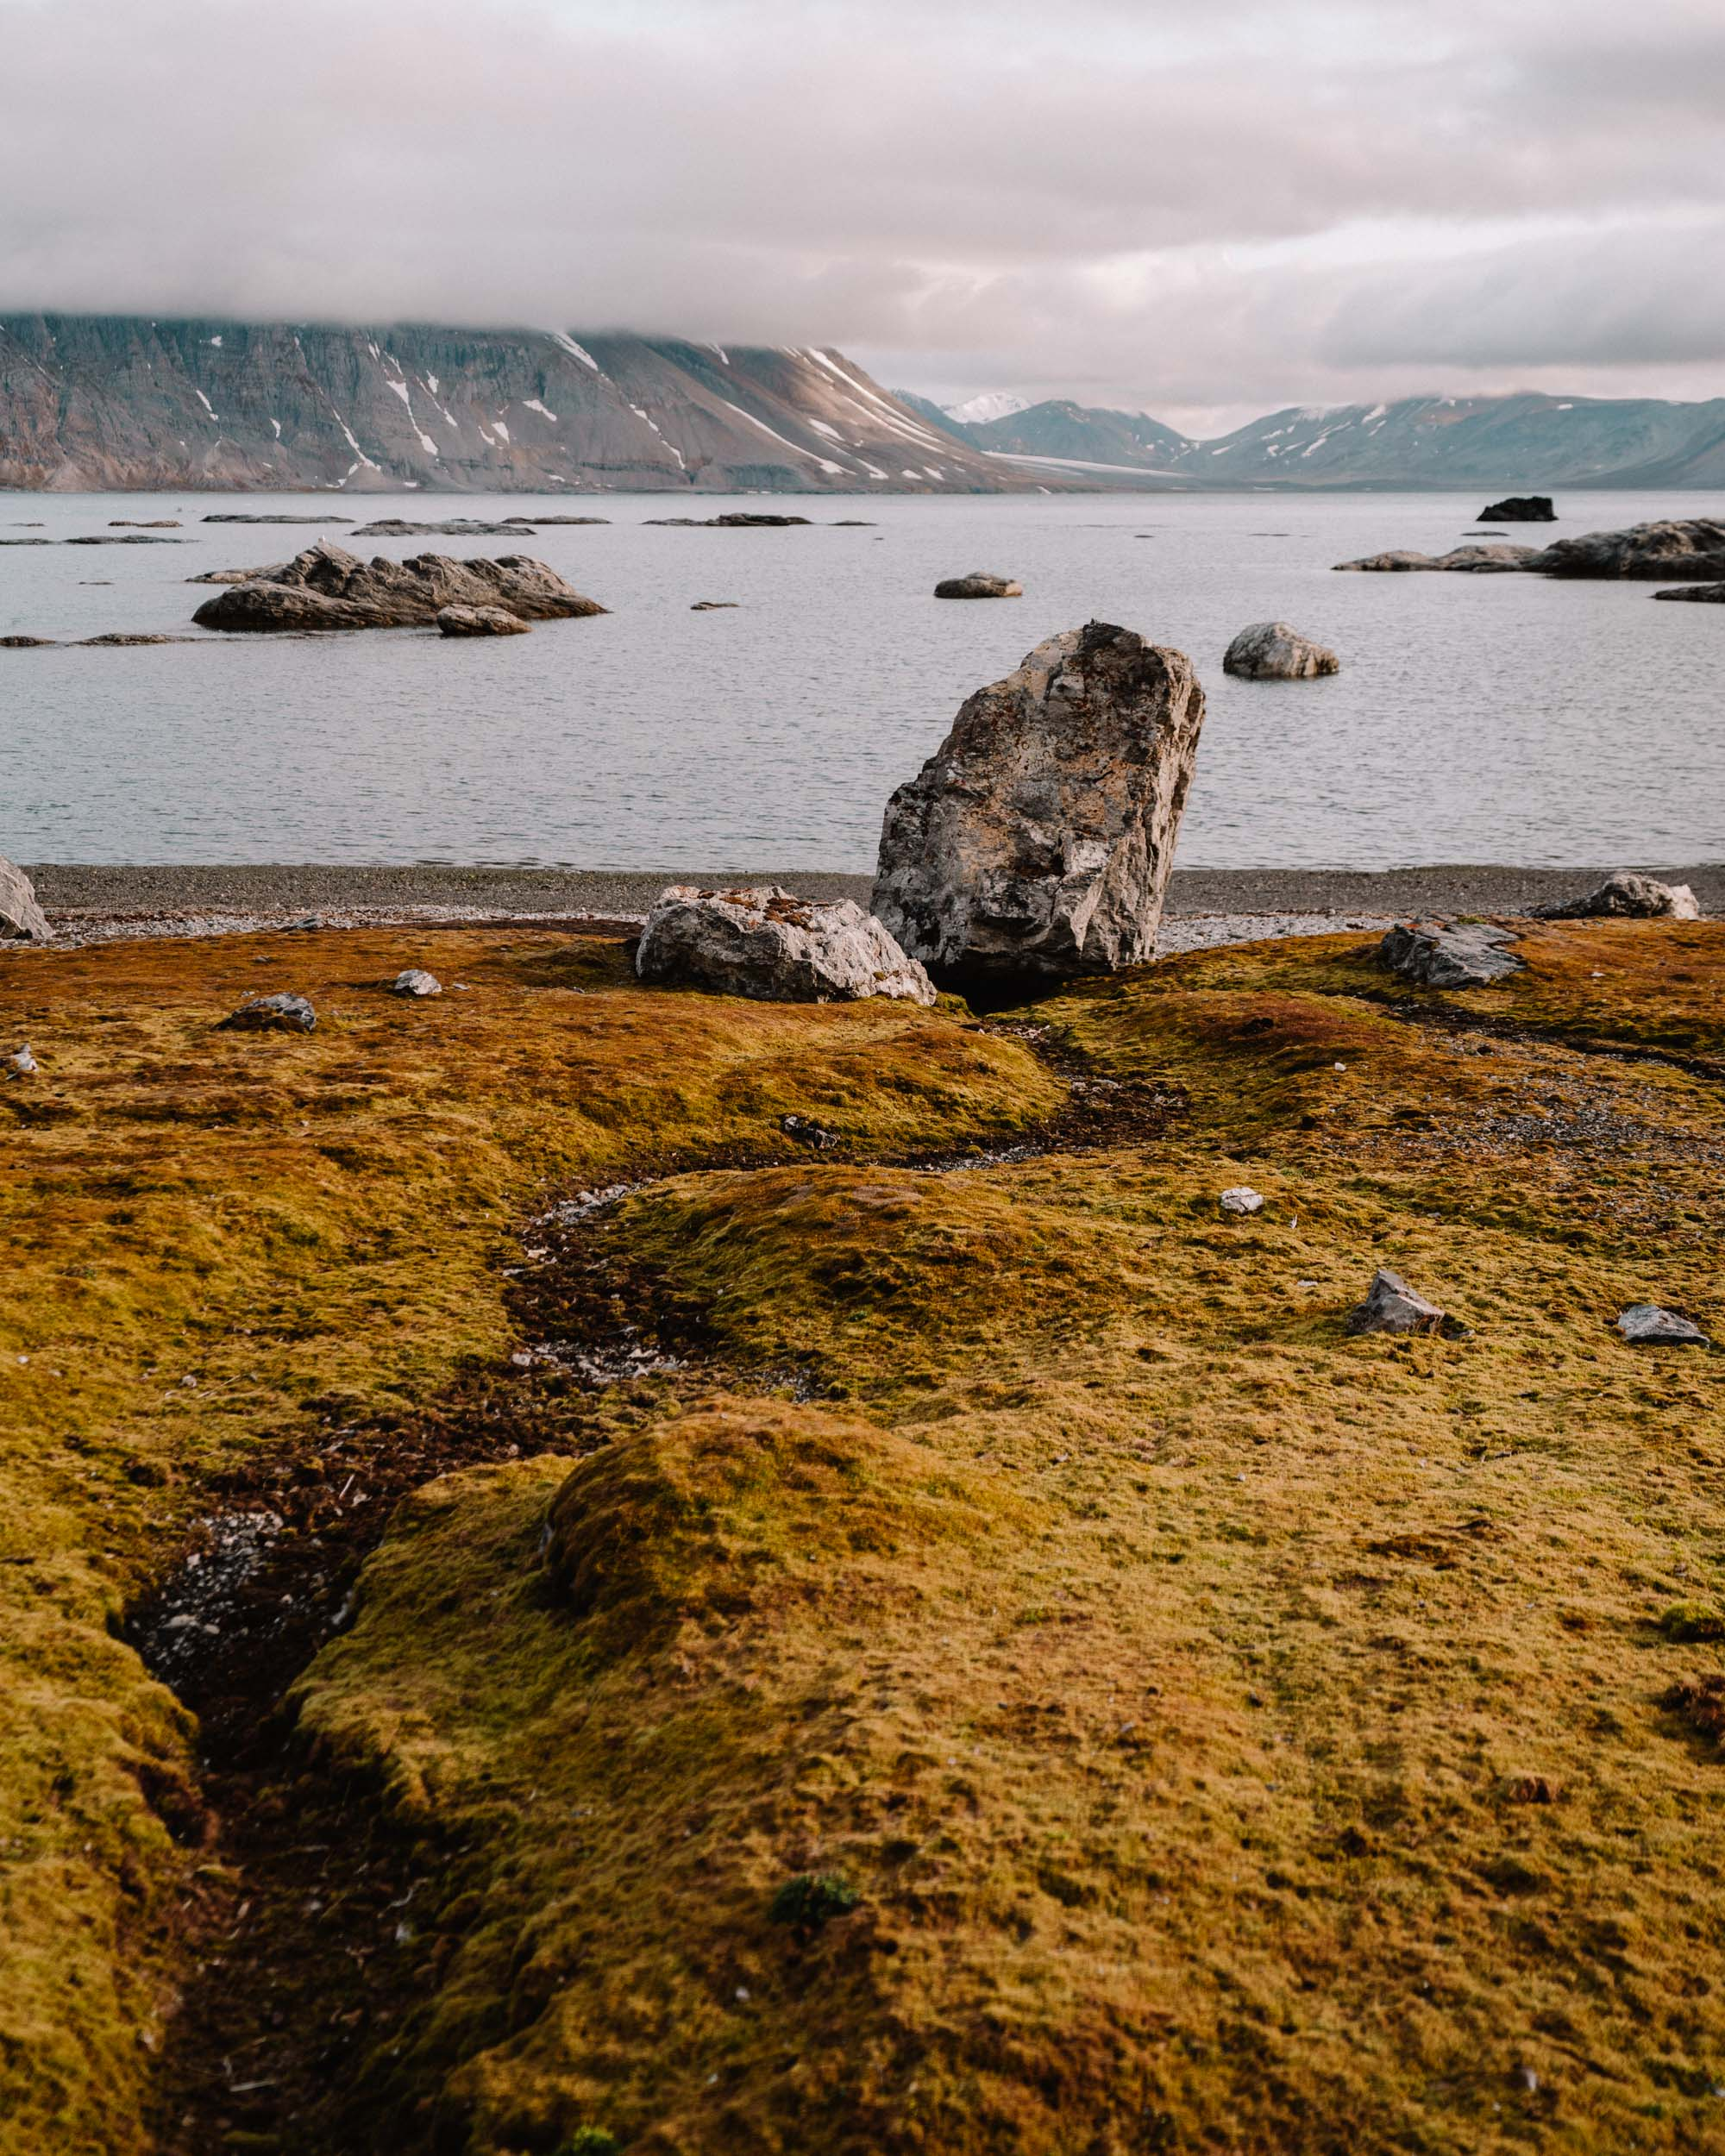 Flora and fauna in Svalbard, Norway